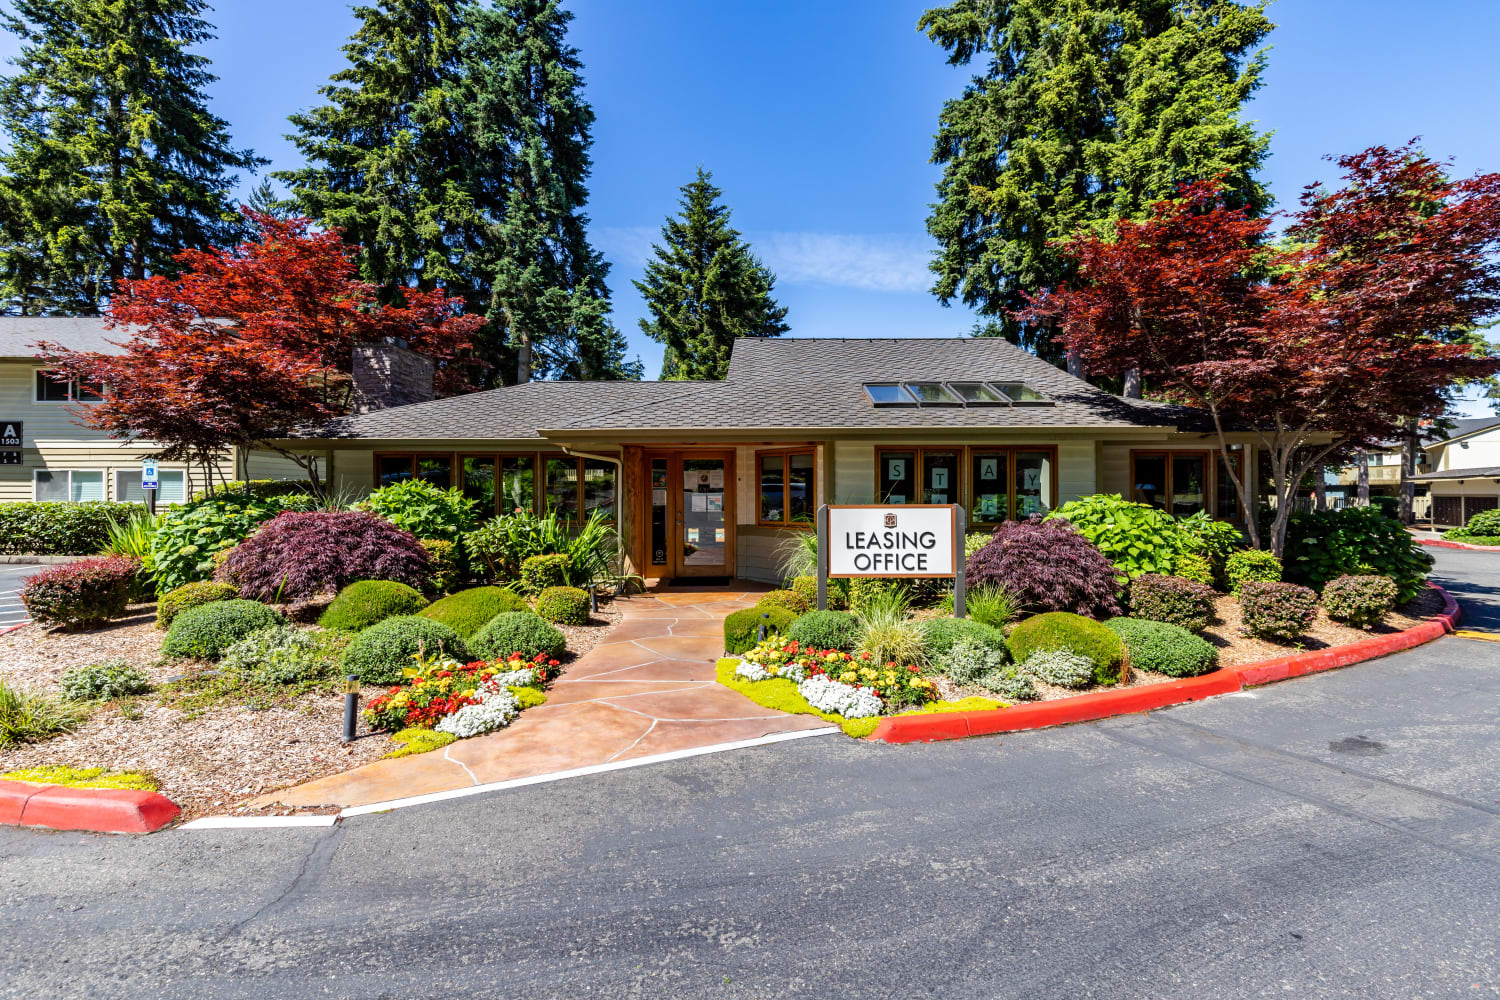 Leasing office at Edgewood Park Apartments in Bellevue, Washington